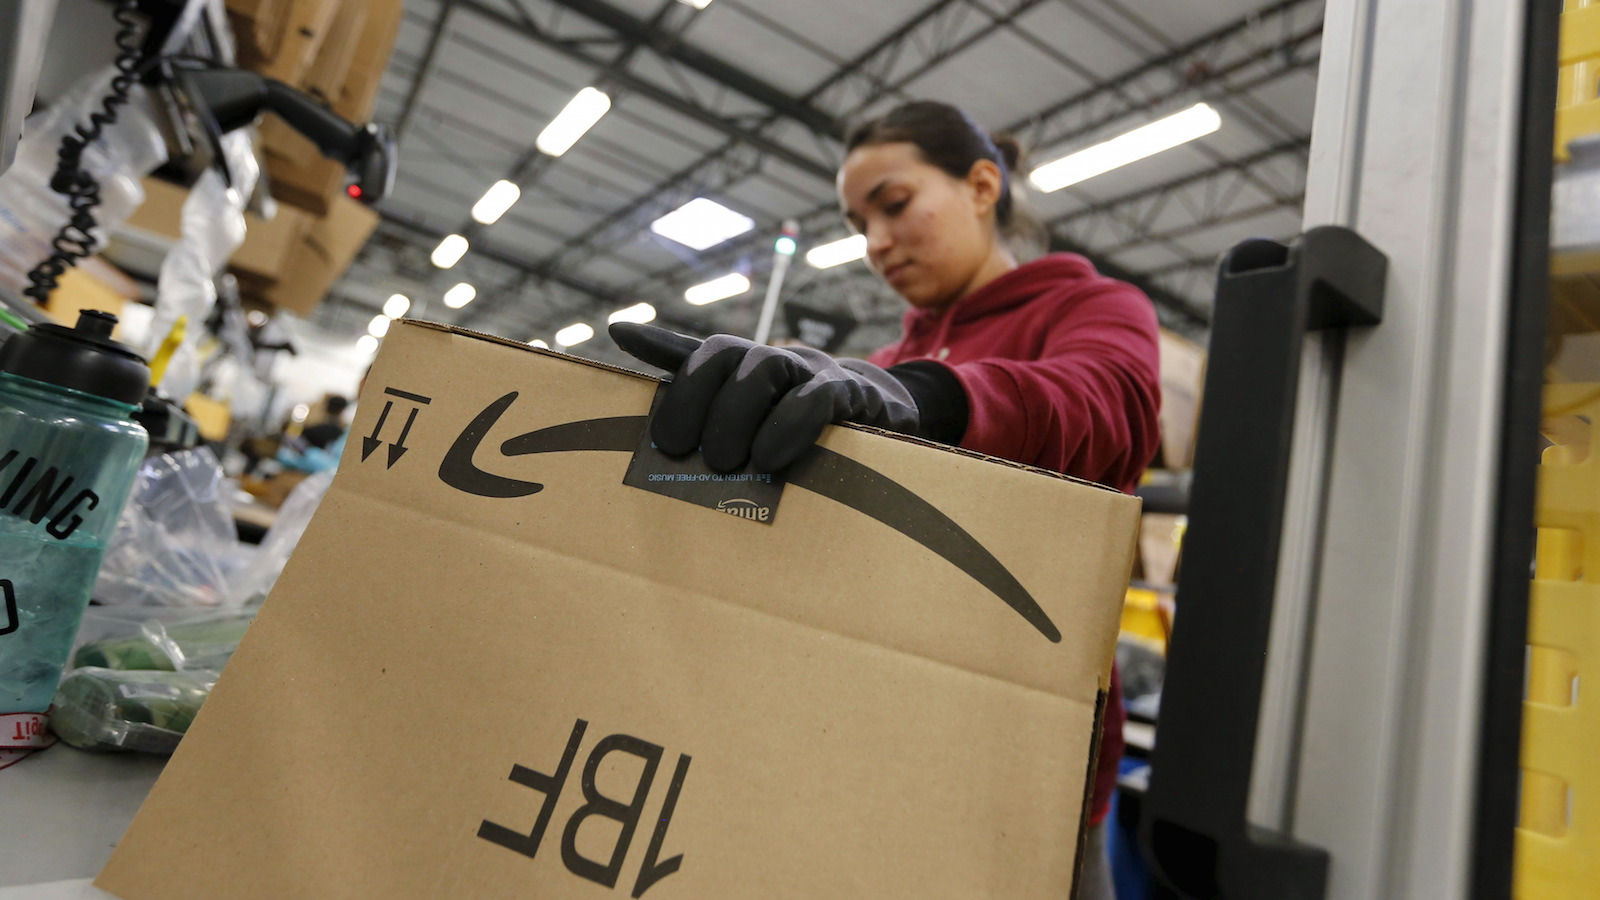 Maria Alcanta prepares a box for a customer's items at the Amazon Fulfillment Center in Tracy, California, November 29, 2015. U.S. holiday shopping is on track for a modest 3.7 percent rise this year after strong turnout during the Thanksgiving and Black Friday weekend and thanks to strong online sales, the National Retail Federation said on Sunday after releasing an annual consumer poll. REUTERS/Fred Greaves - RTX1WF36